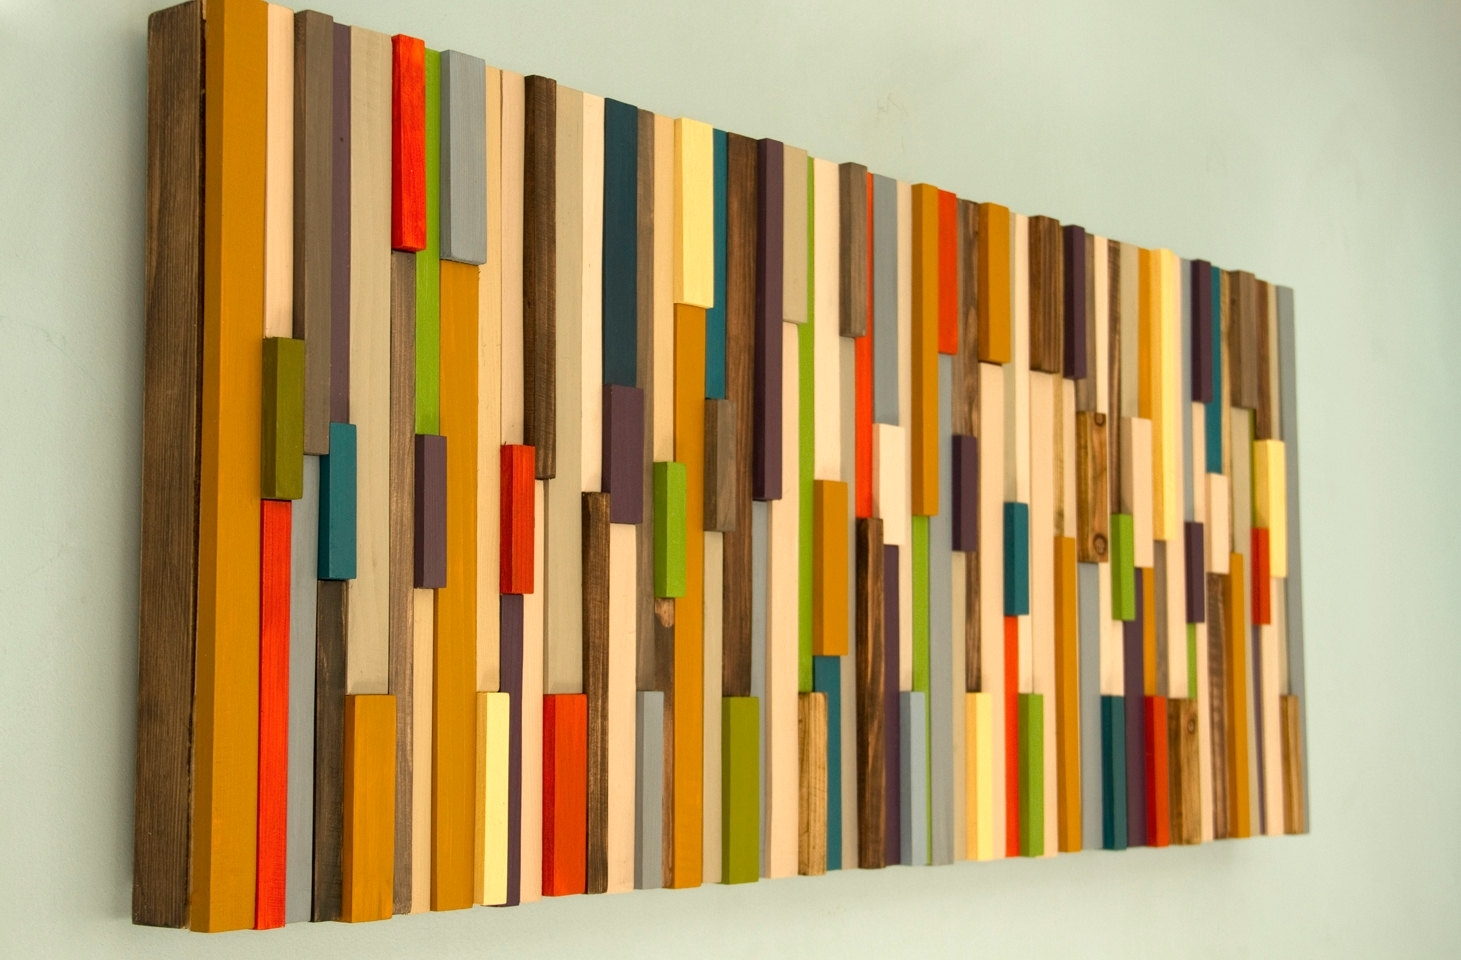 Modern Large Wall Art, Reclaimed Wood Art Sculpture, Painted Wood With Regard To Most Recently Released Wood Art Wall (View 4 of 15)